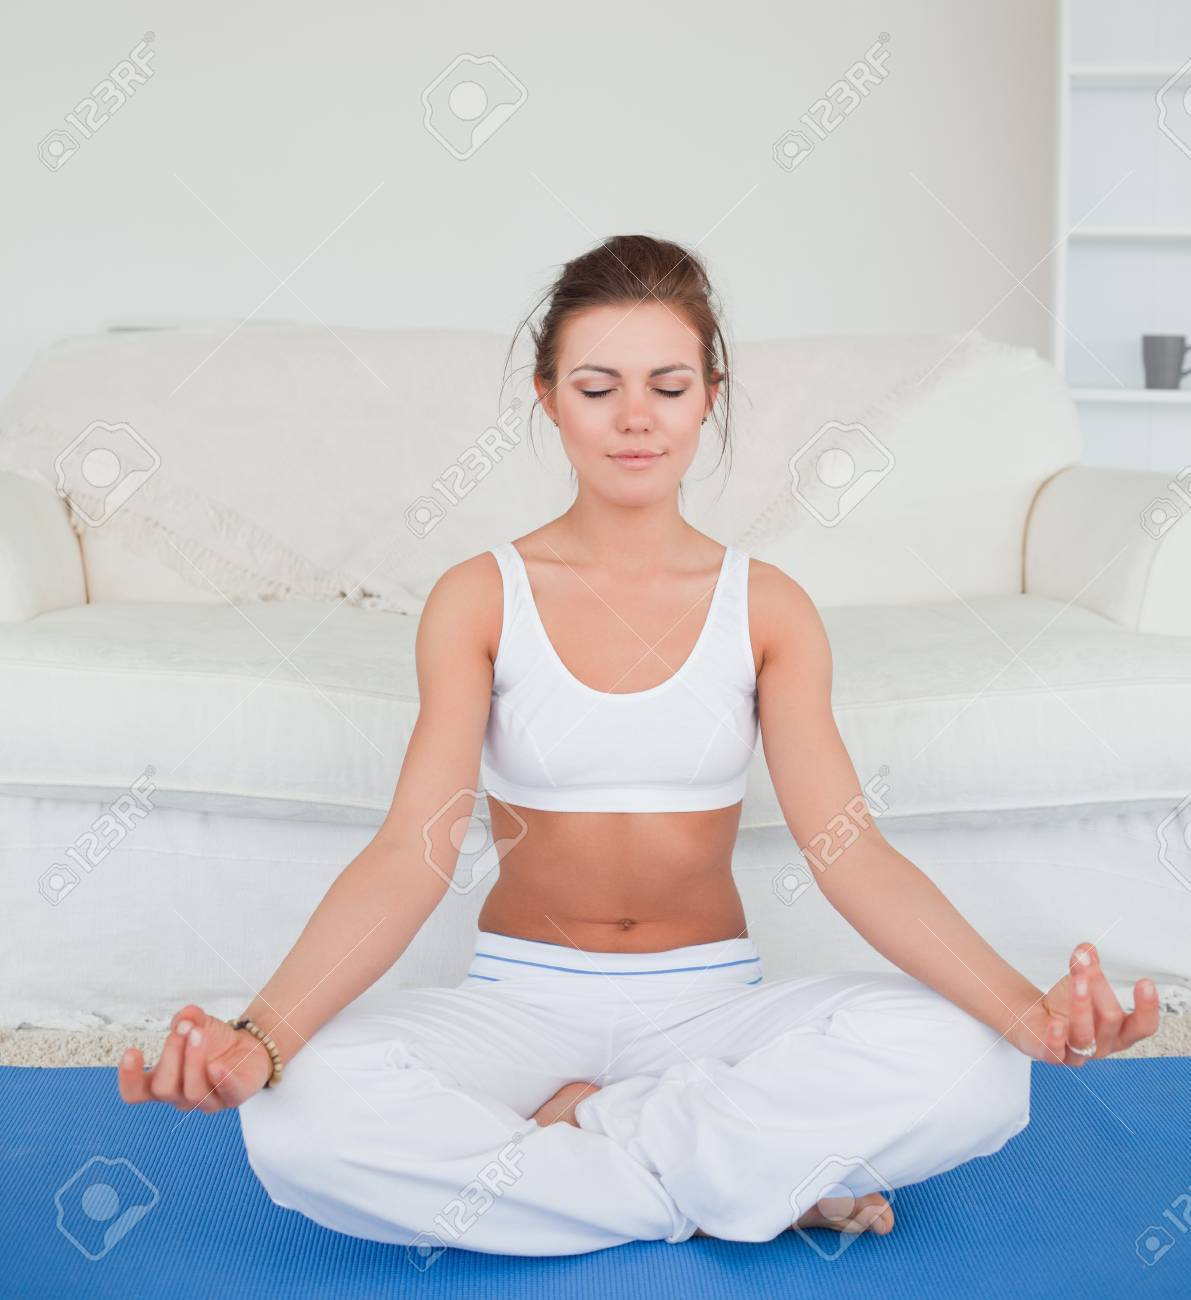 Calm brunette practicing yoga in her living room Stock Photo - 10070401